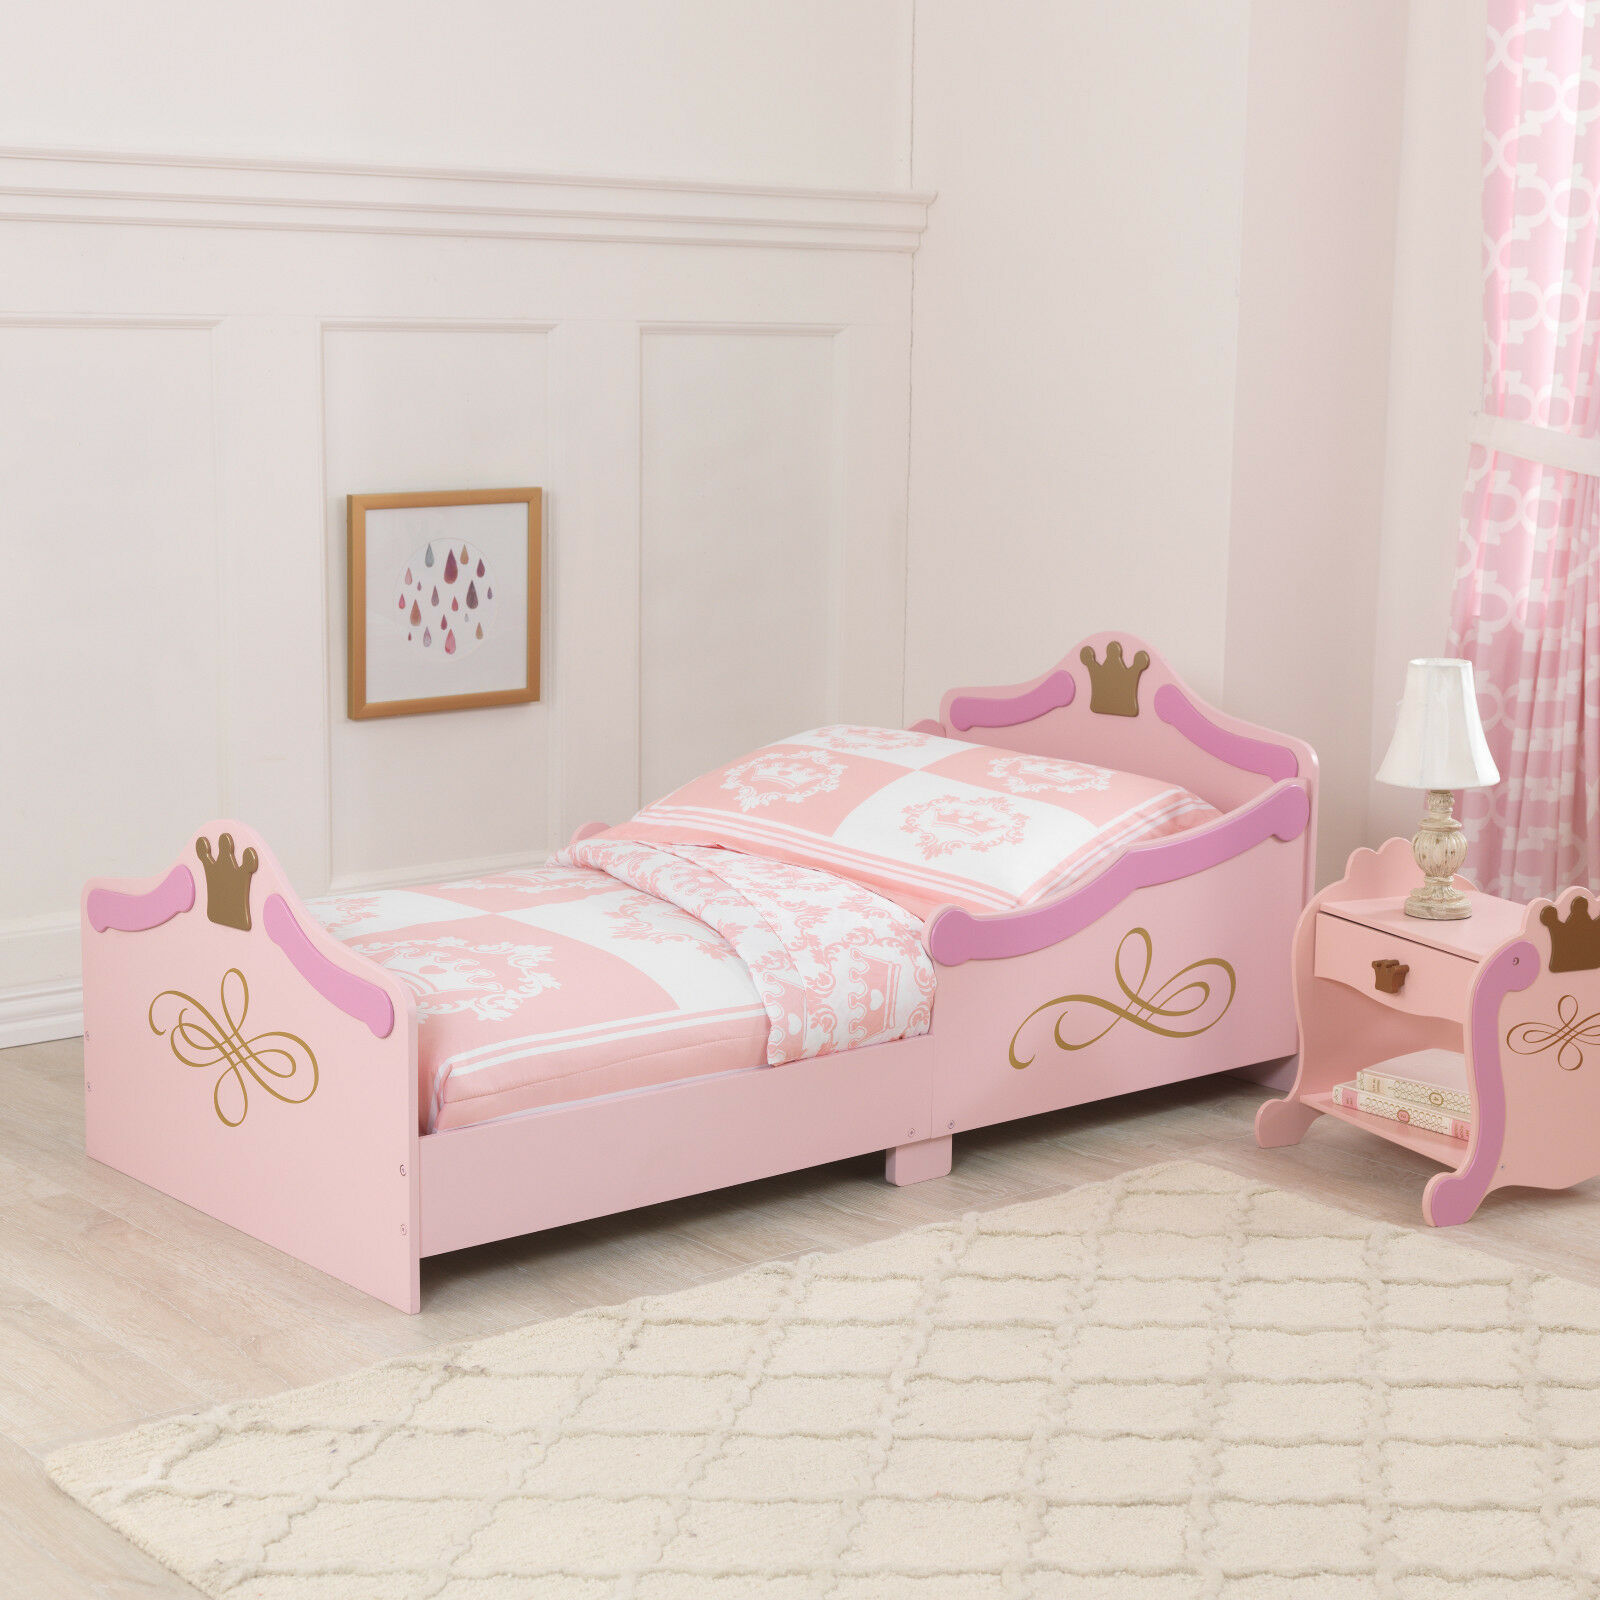 Kidkraft Princesse Toddler Bed-Filles Premier Lit Cotbed Taille Base